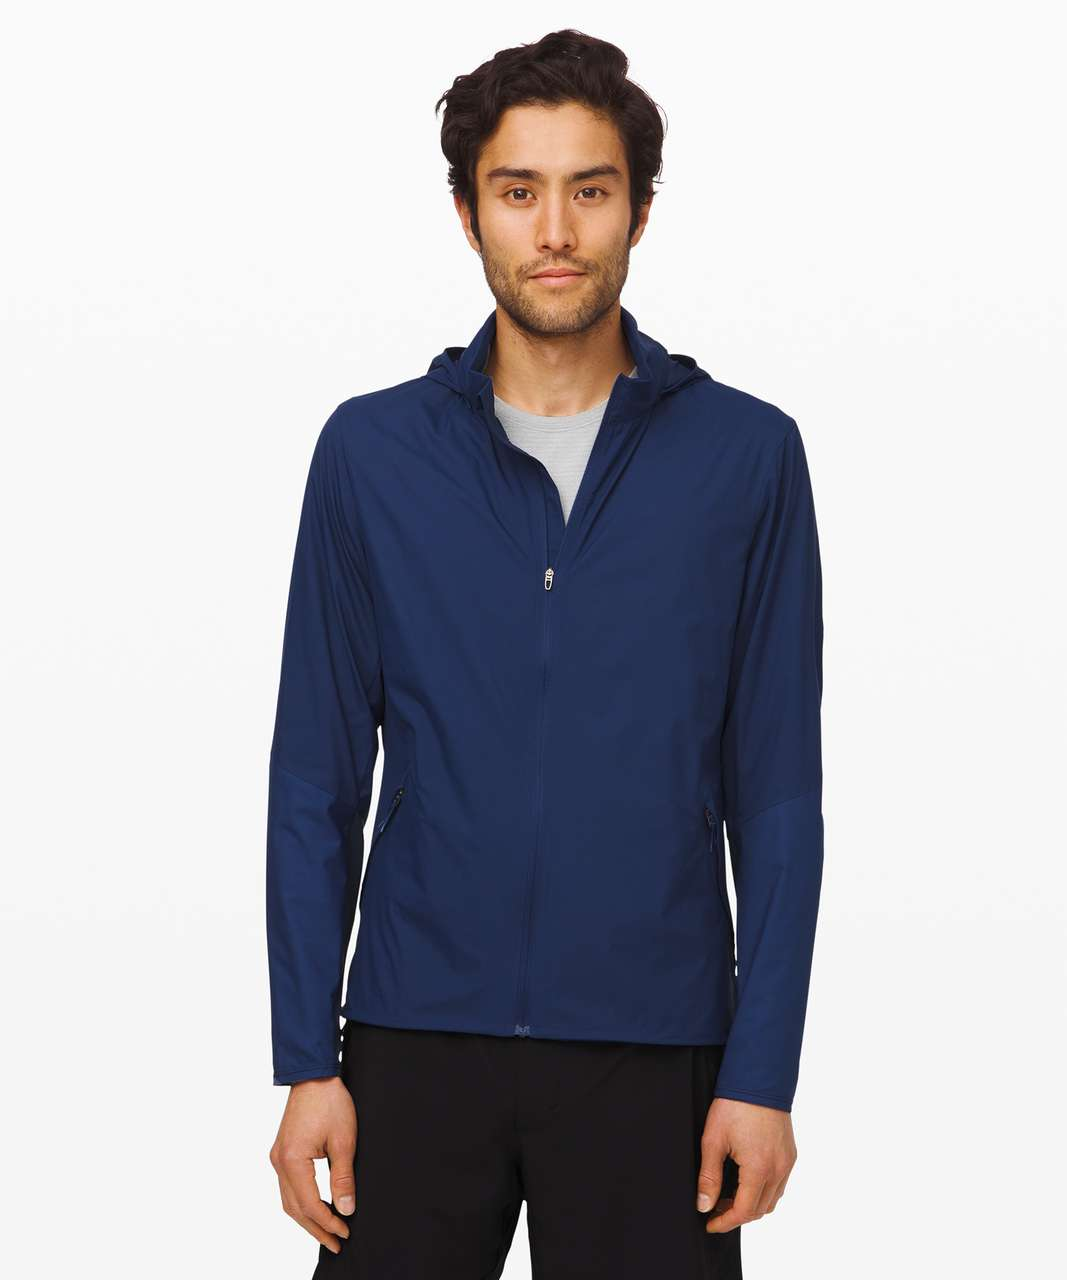 Lululemon Active Jacket - Midnight Shadow